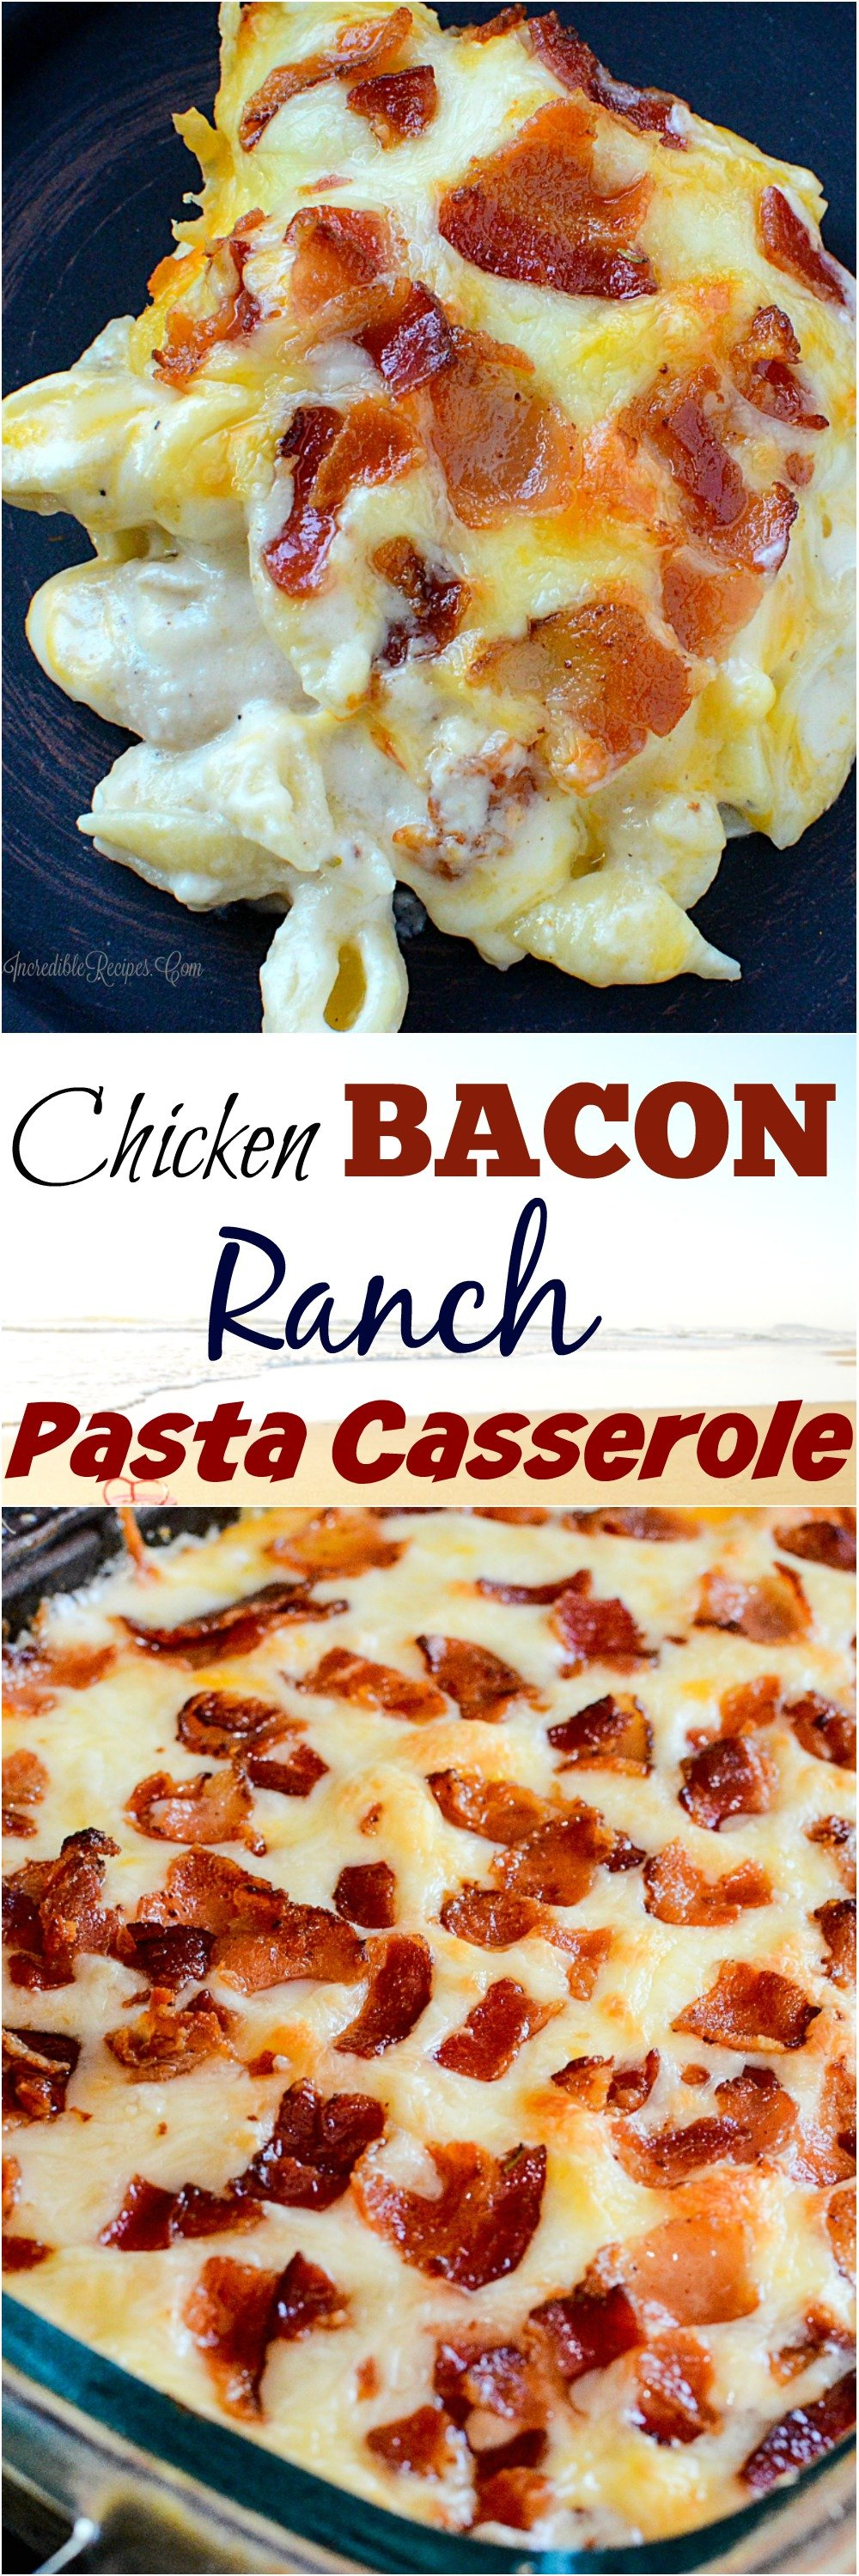 pinterestbaconranch